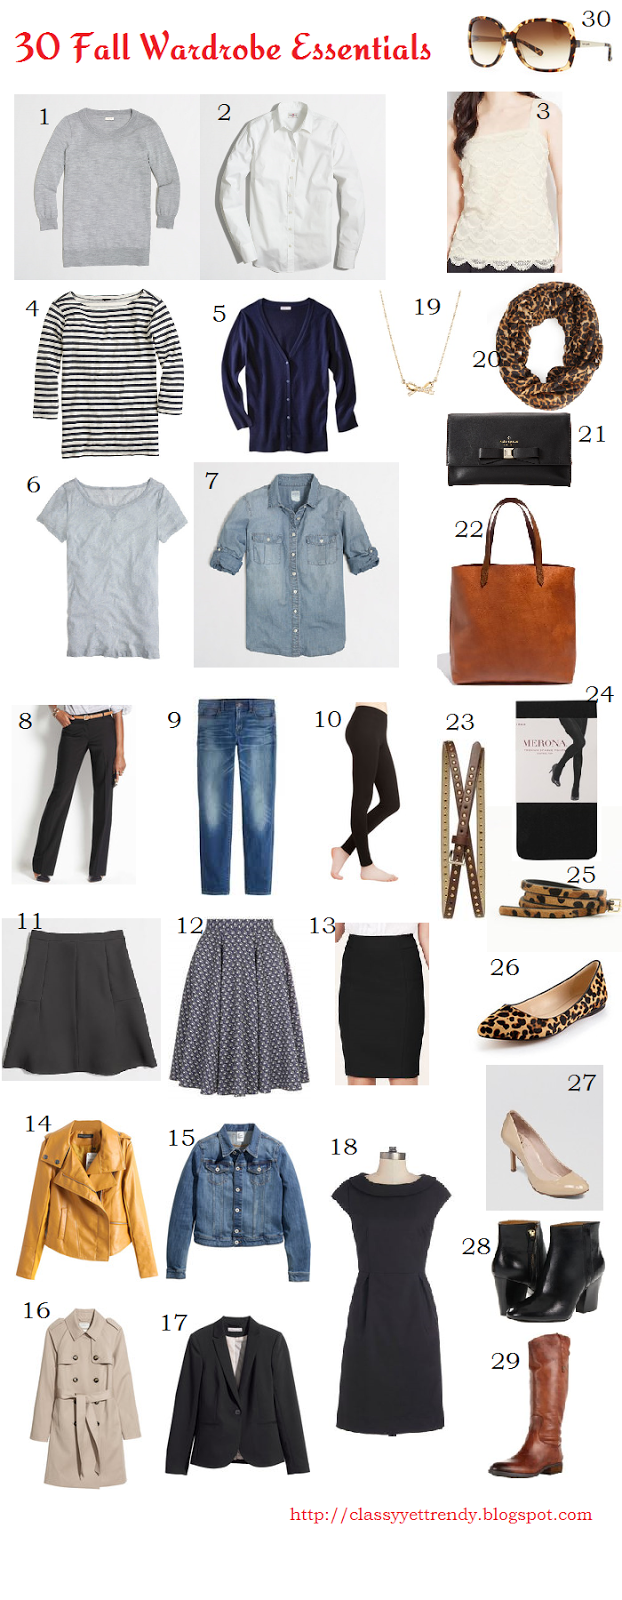 30 Fall Wardrobe Essentials